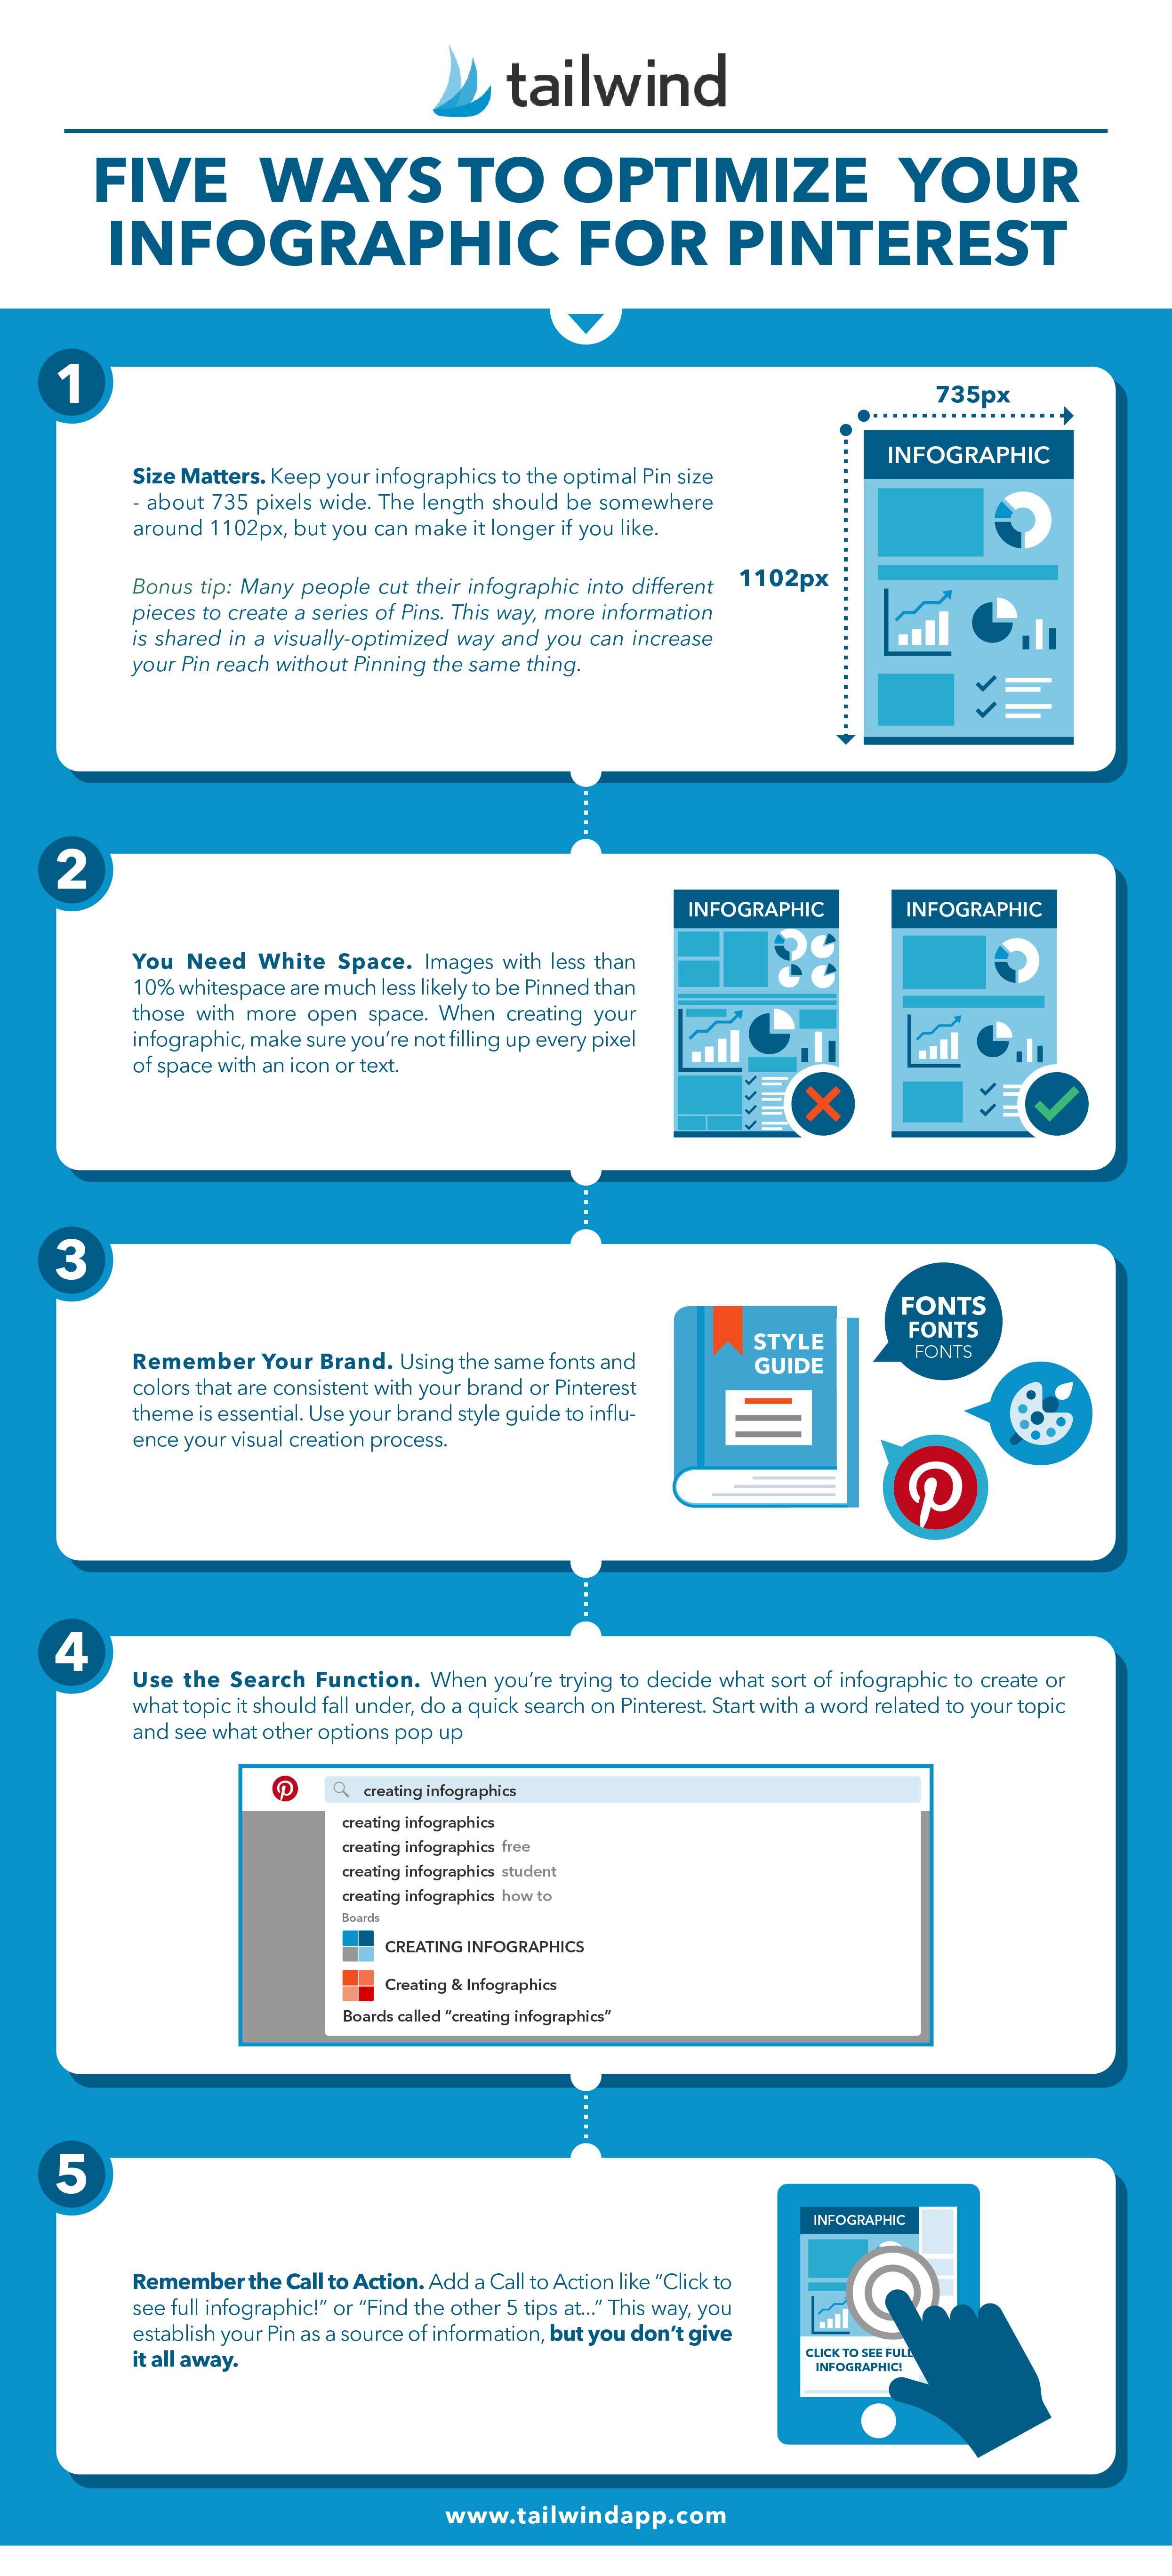 Boost blog traffic with Infographics